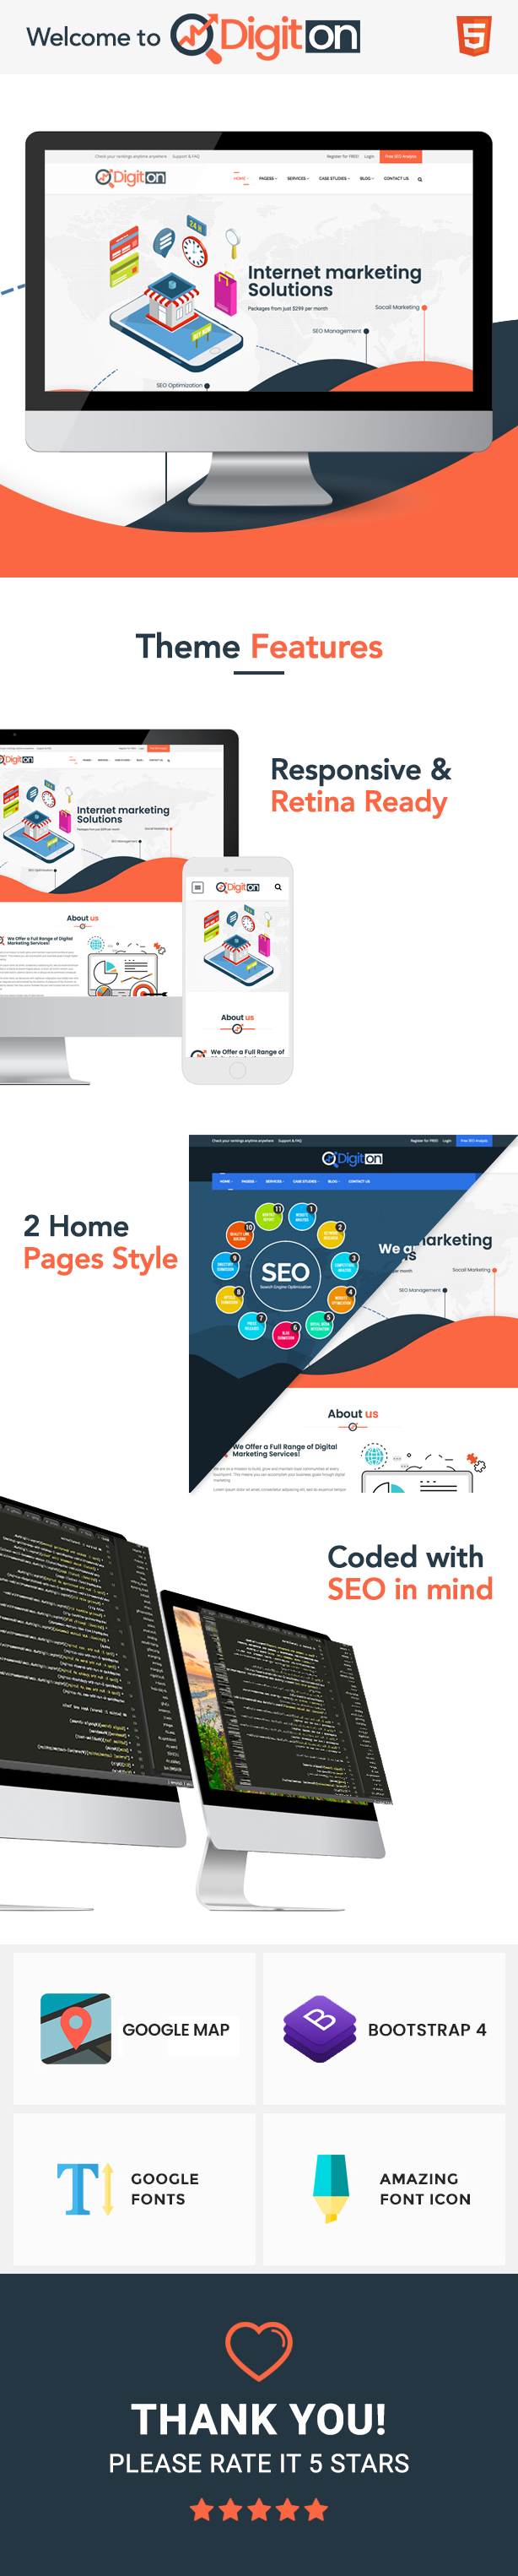 Digiton - SEO and Digital Agency HTML Template - 1